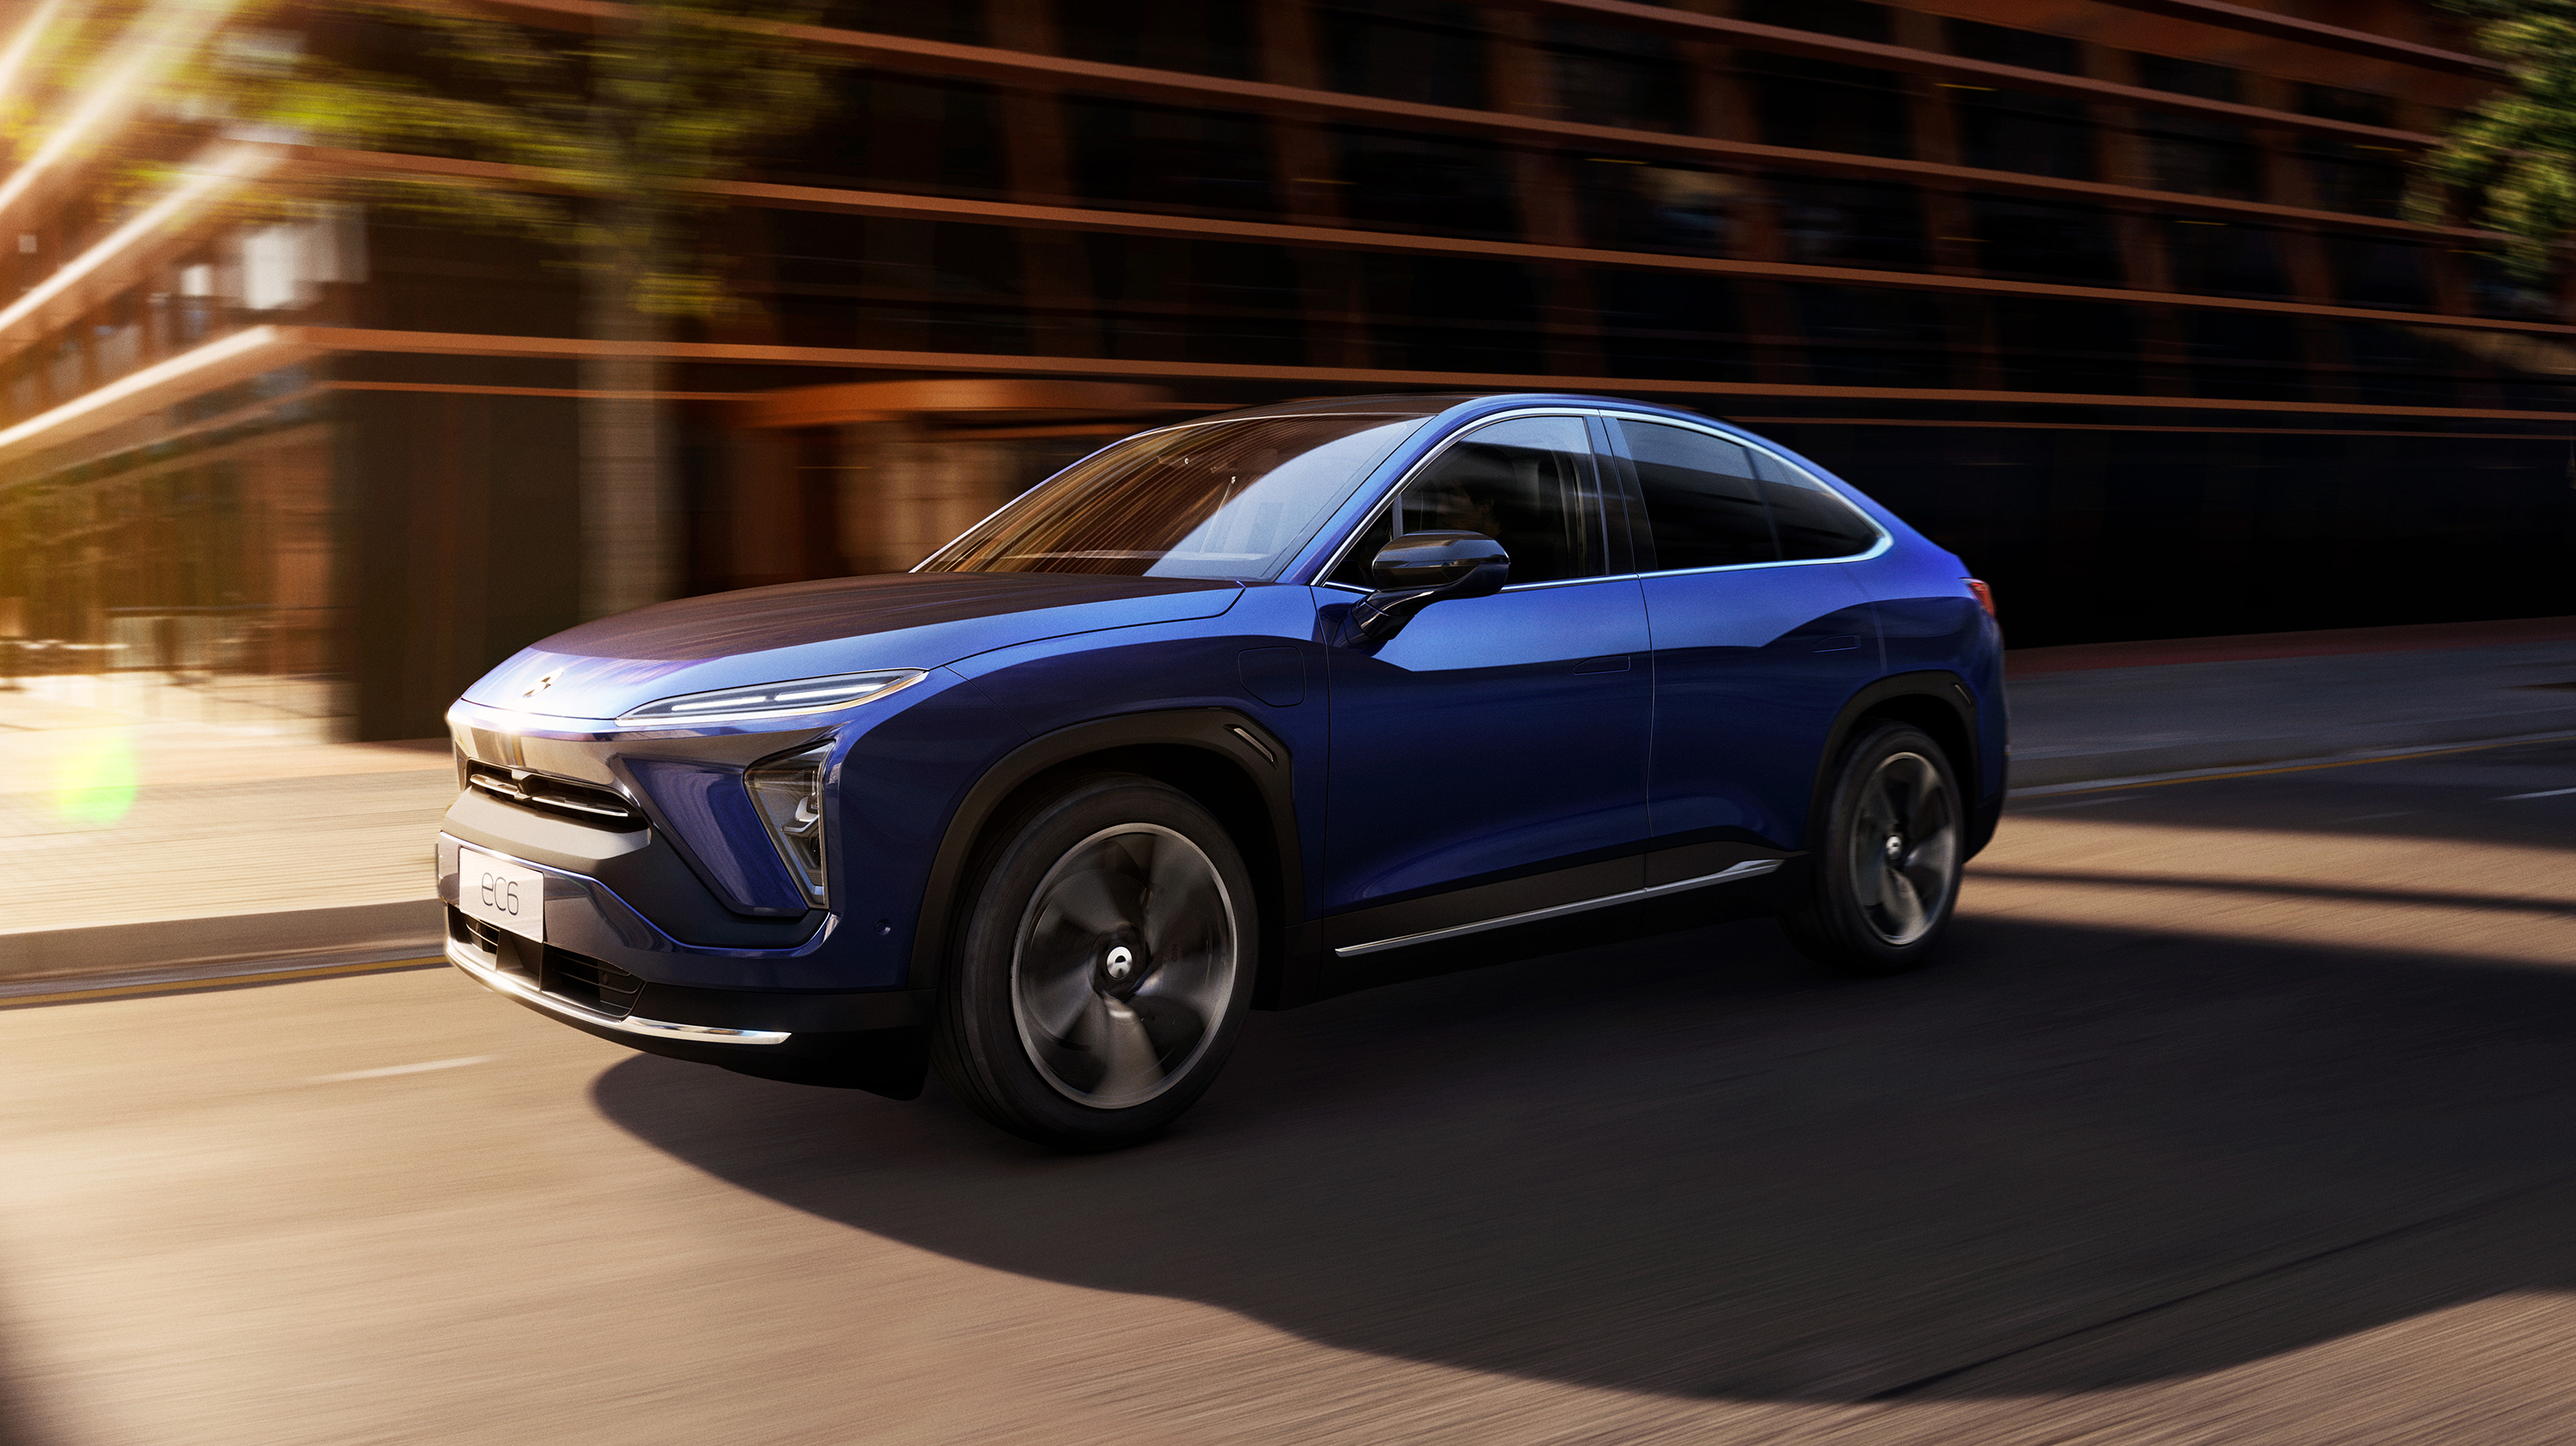 2021 Nio EC6 Review, Specifications, and Images